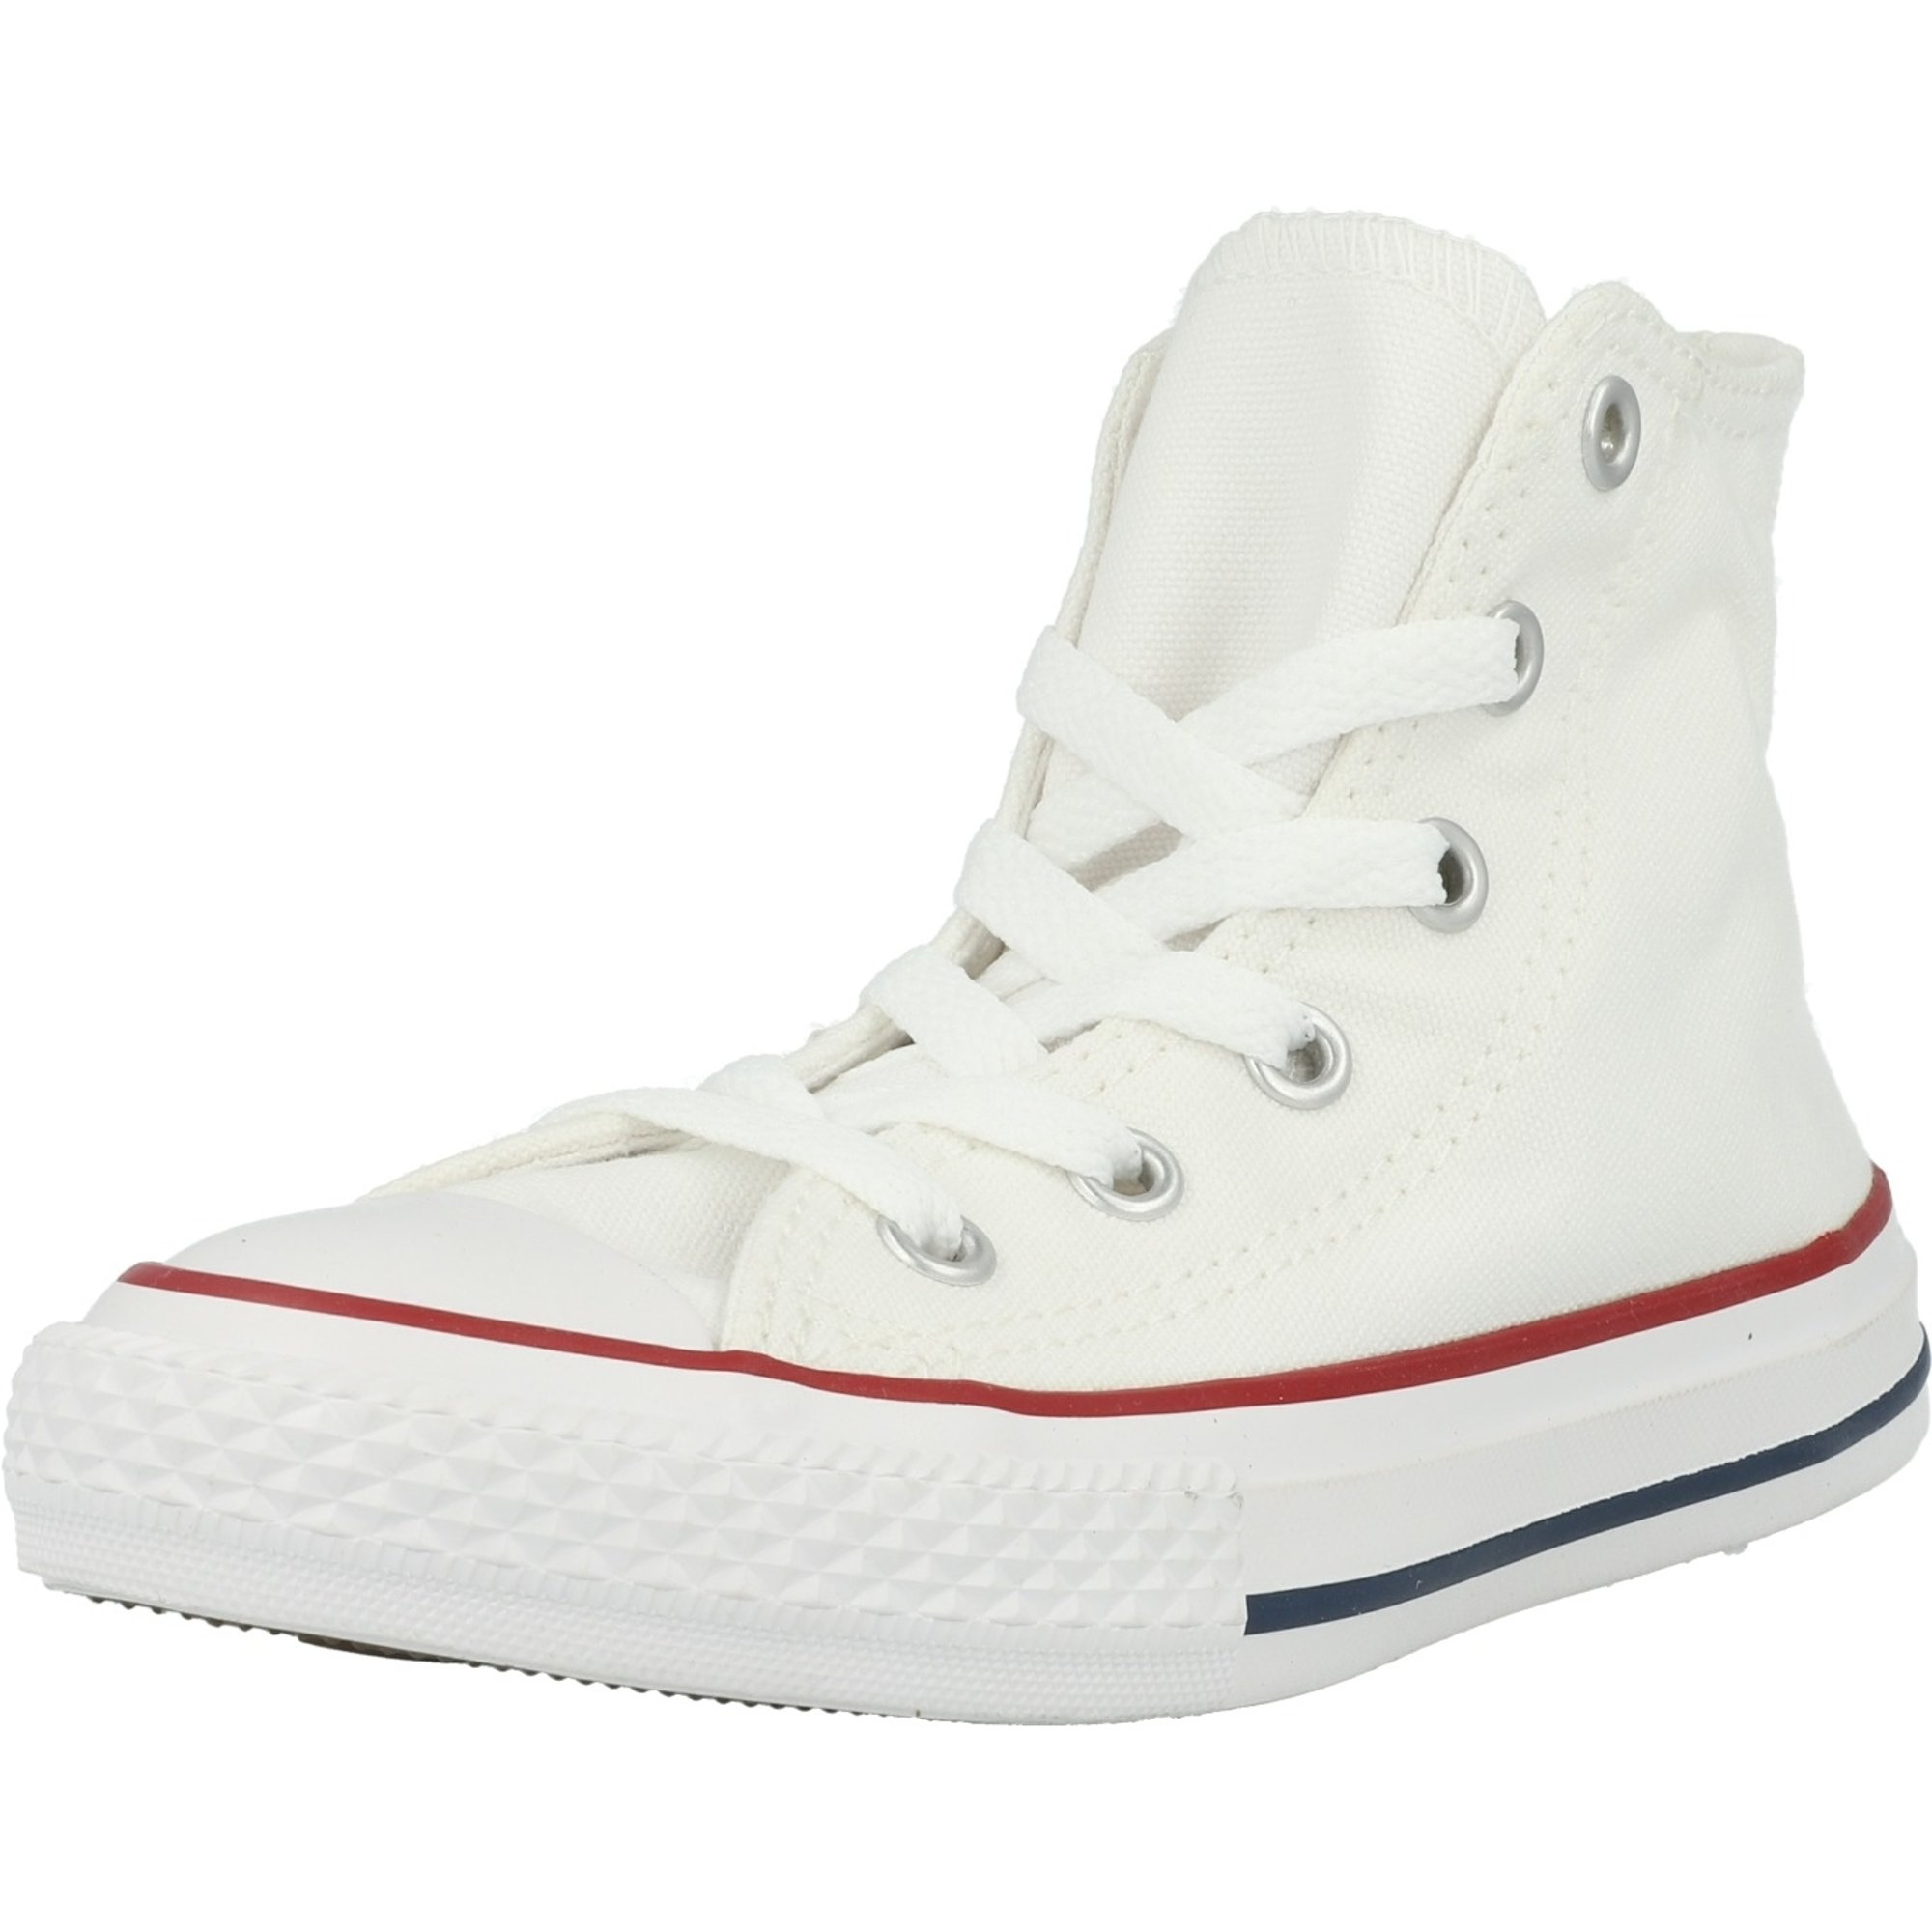 converse youth chuck taylor all star hi textile formateurs